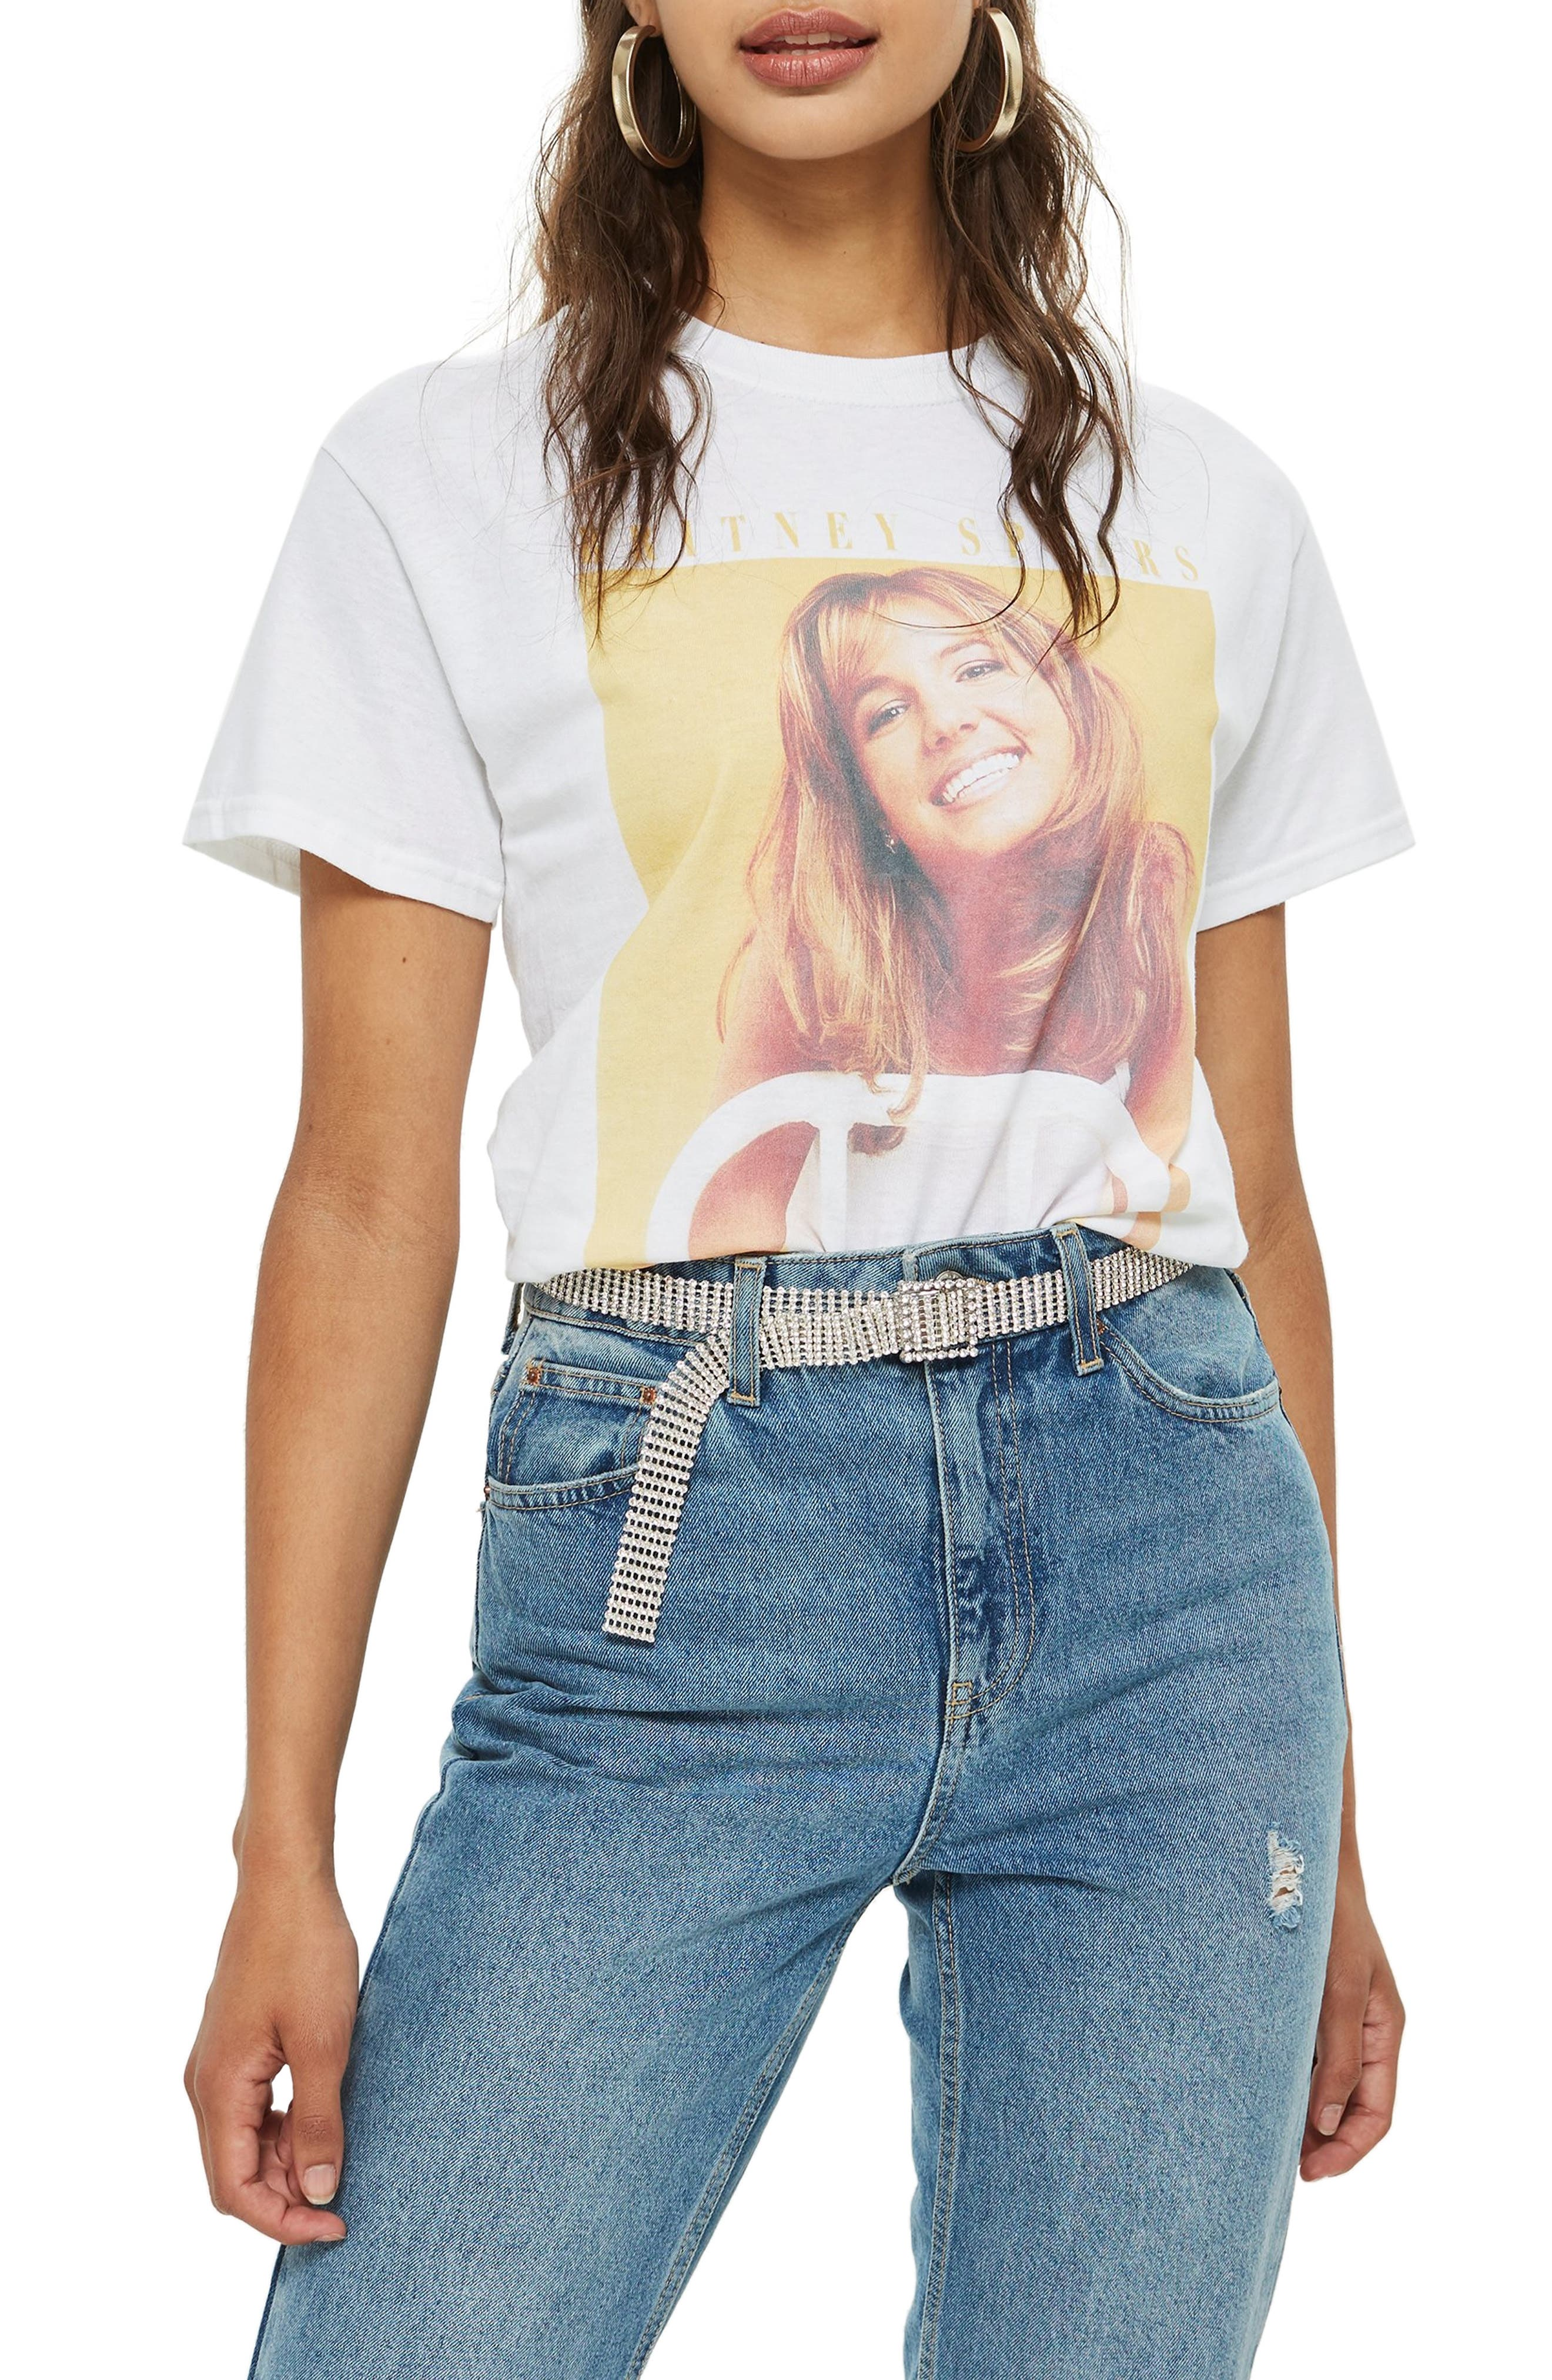 TOPSHOP Britney Spears Graphic Tee, Main, color, 100